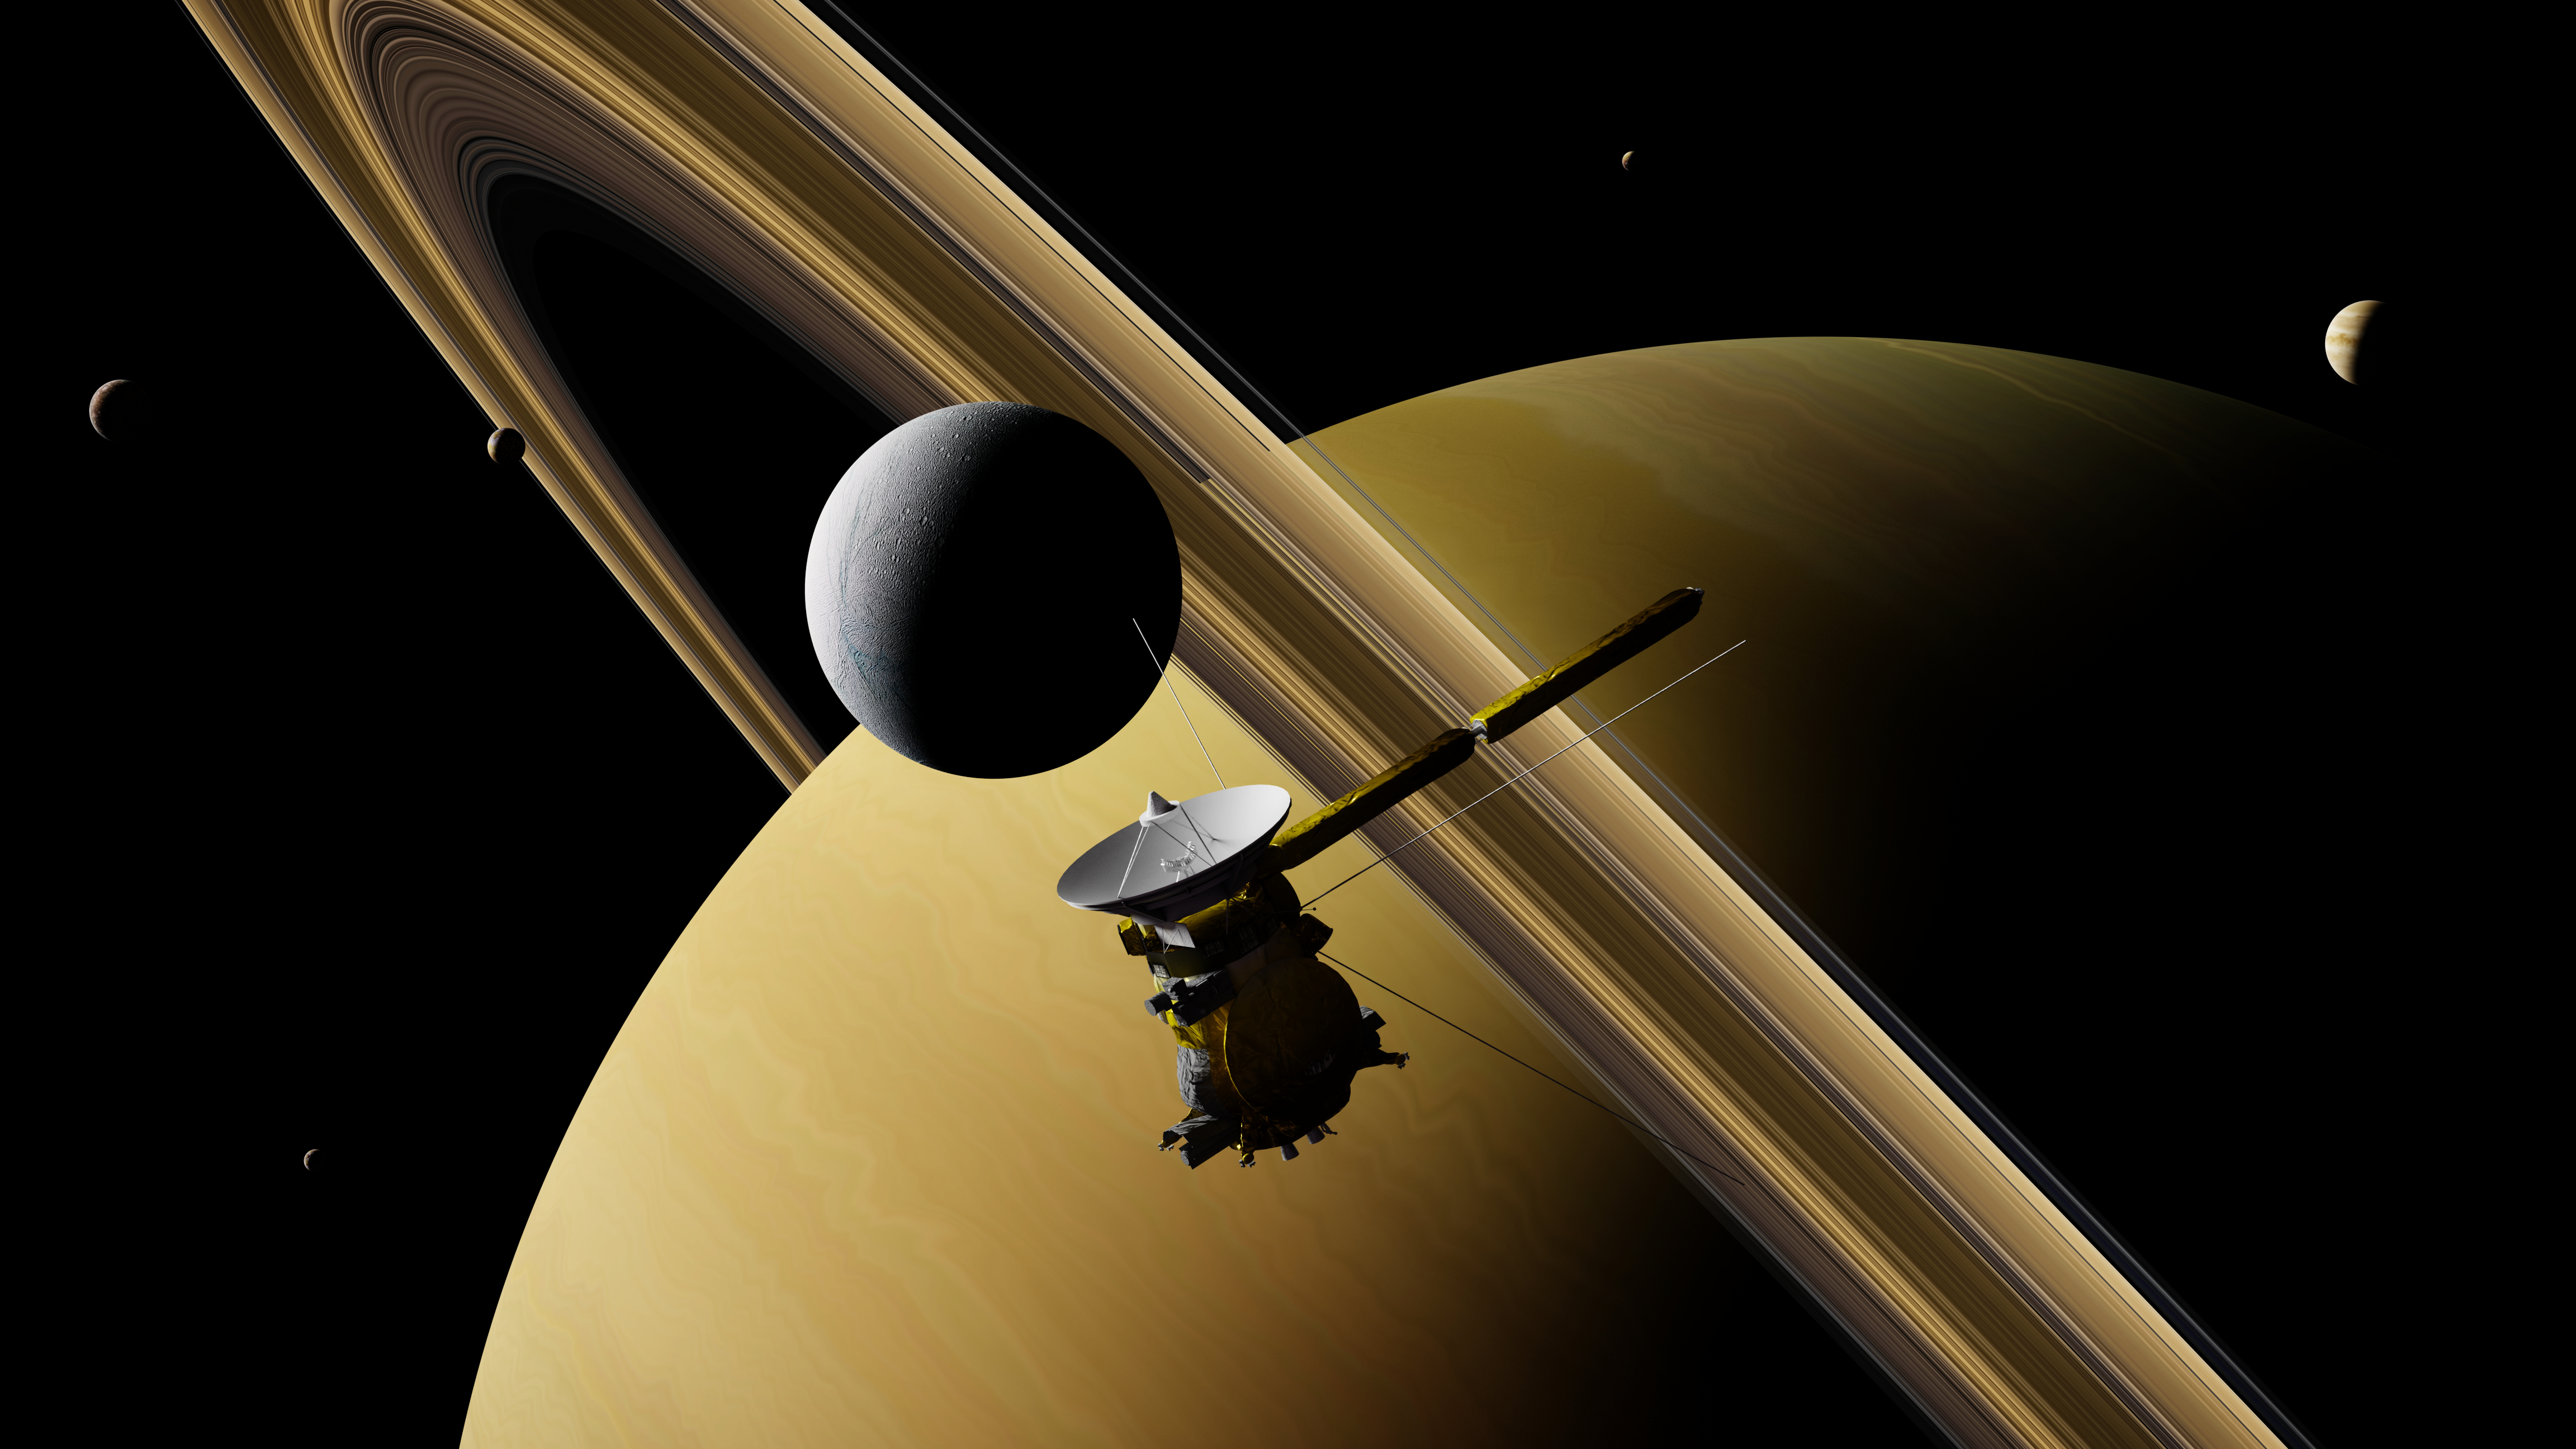 Oxford reflects fondly on Cassini as the end draws near